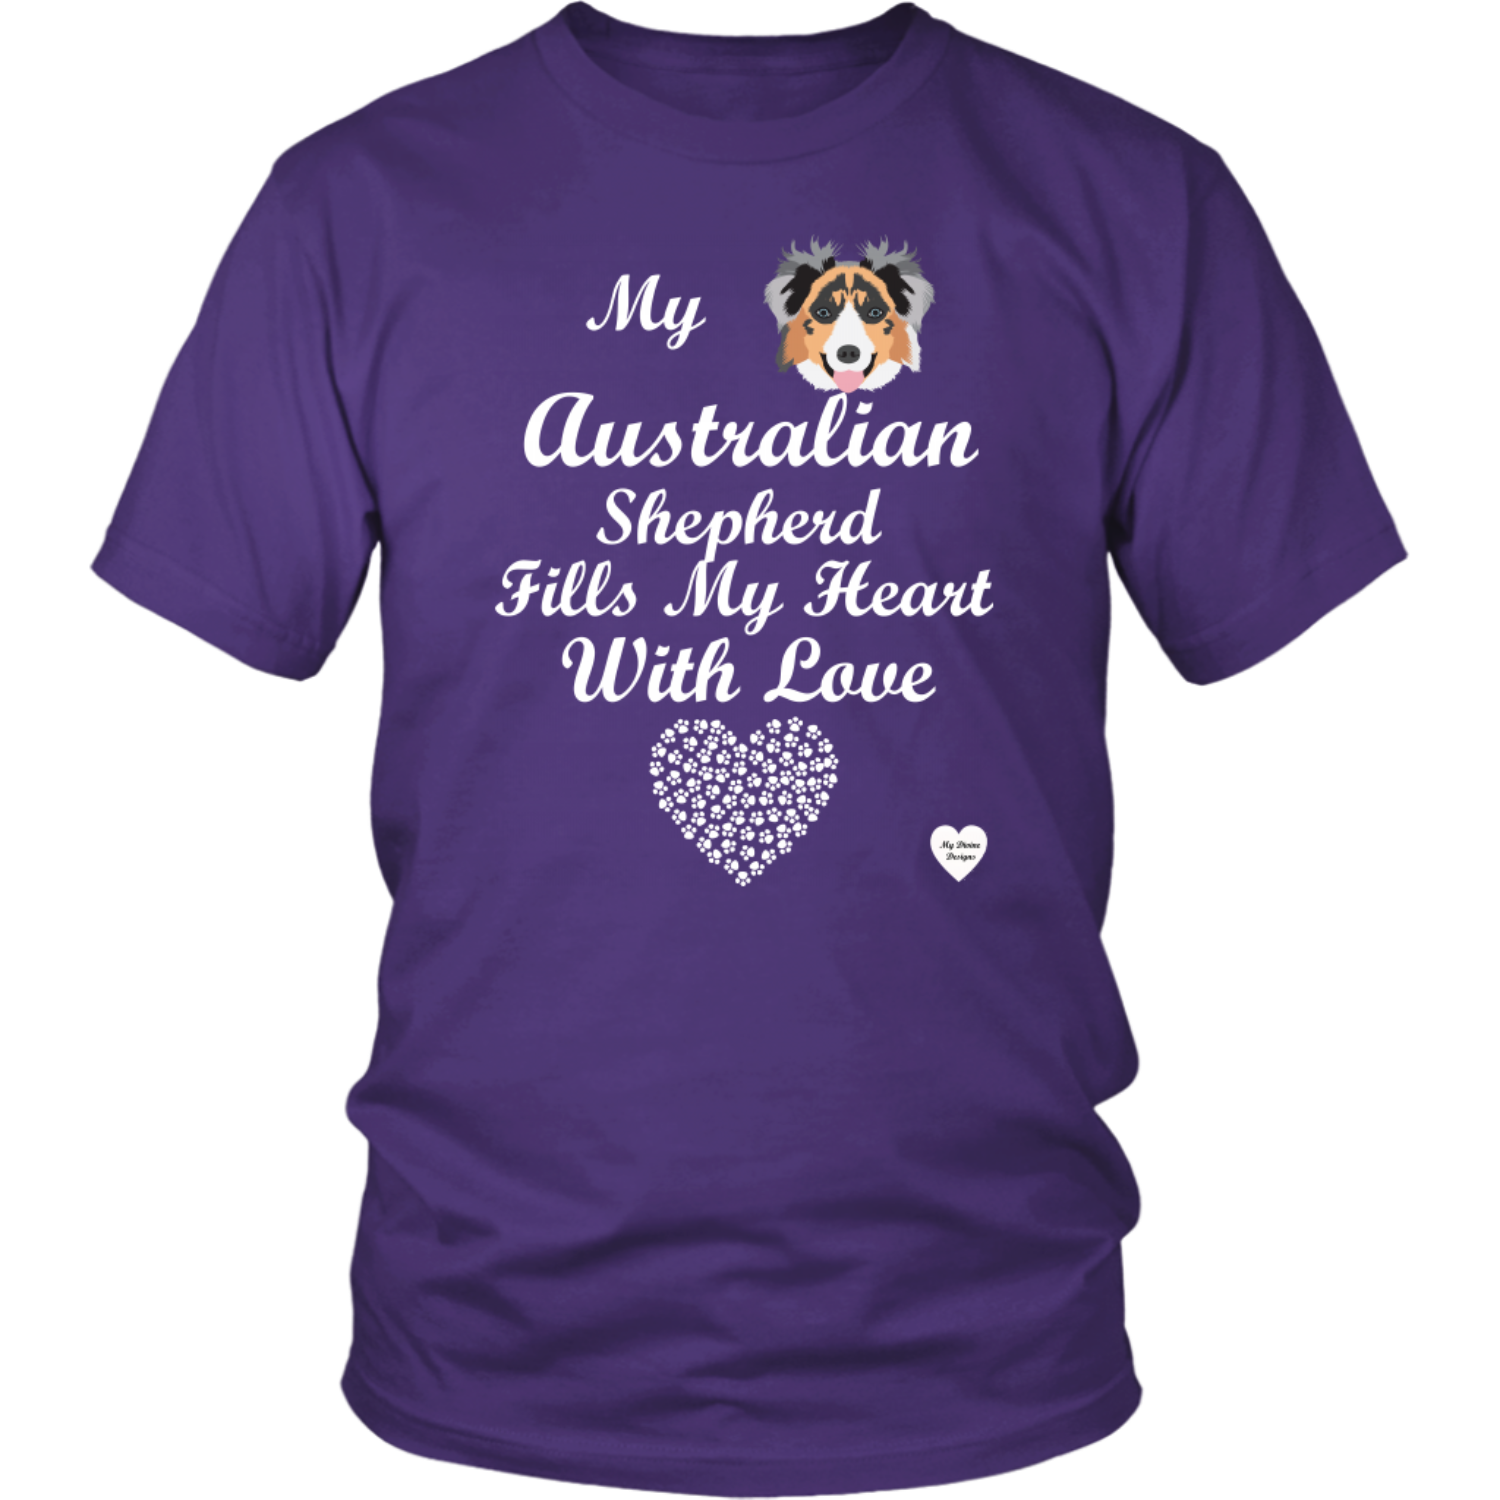 australian shepherd fills my heart t-shirt purple